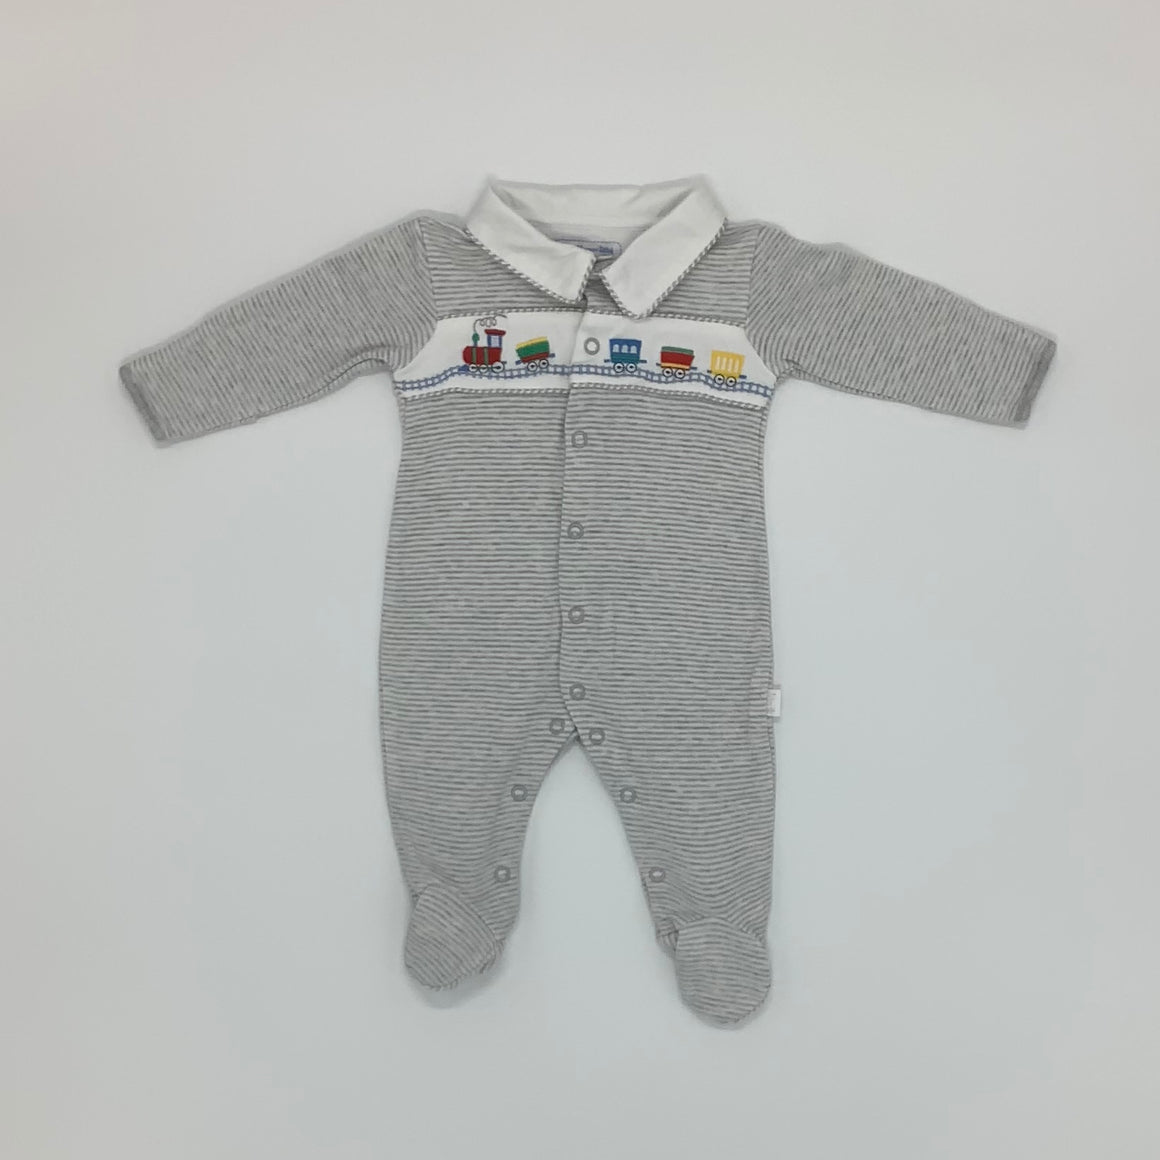 Hardly Worn Jojo Maman Bebe Train Sleepsuit Size 0-3 months